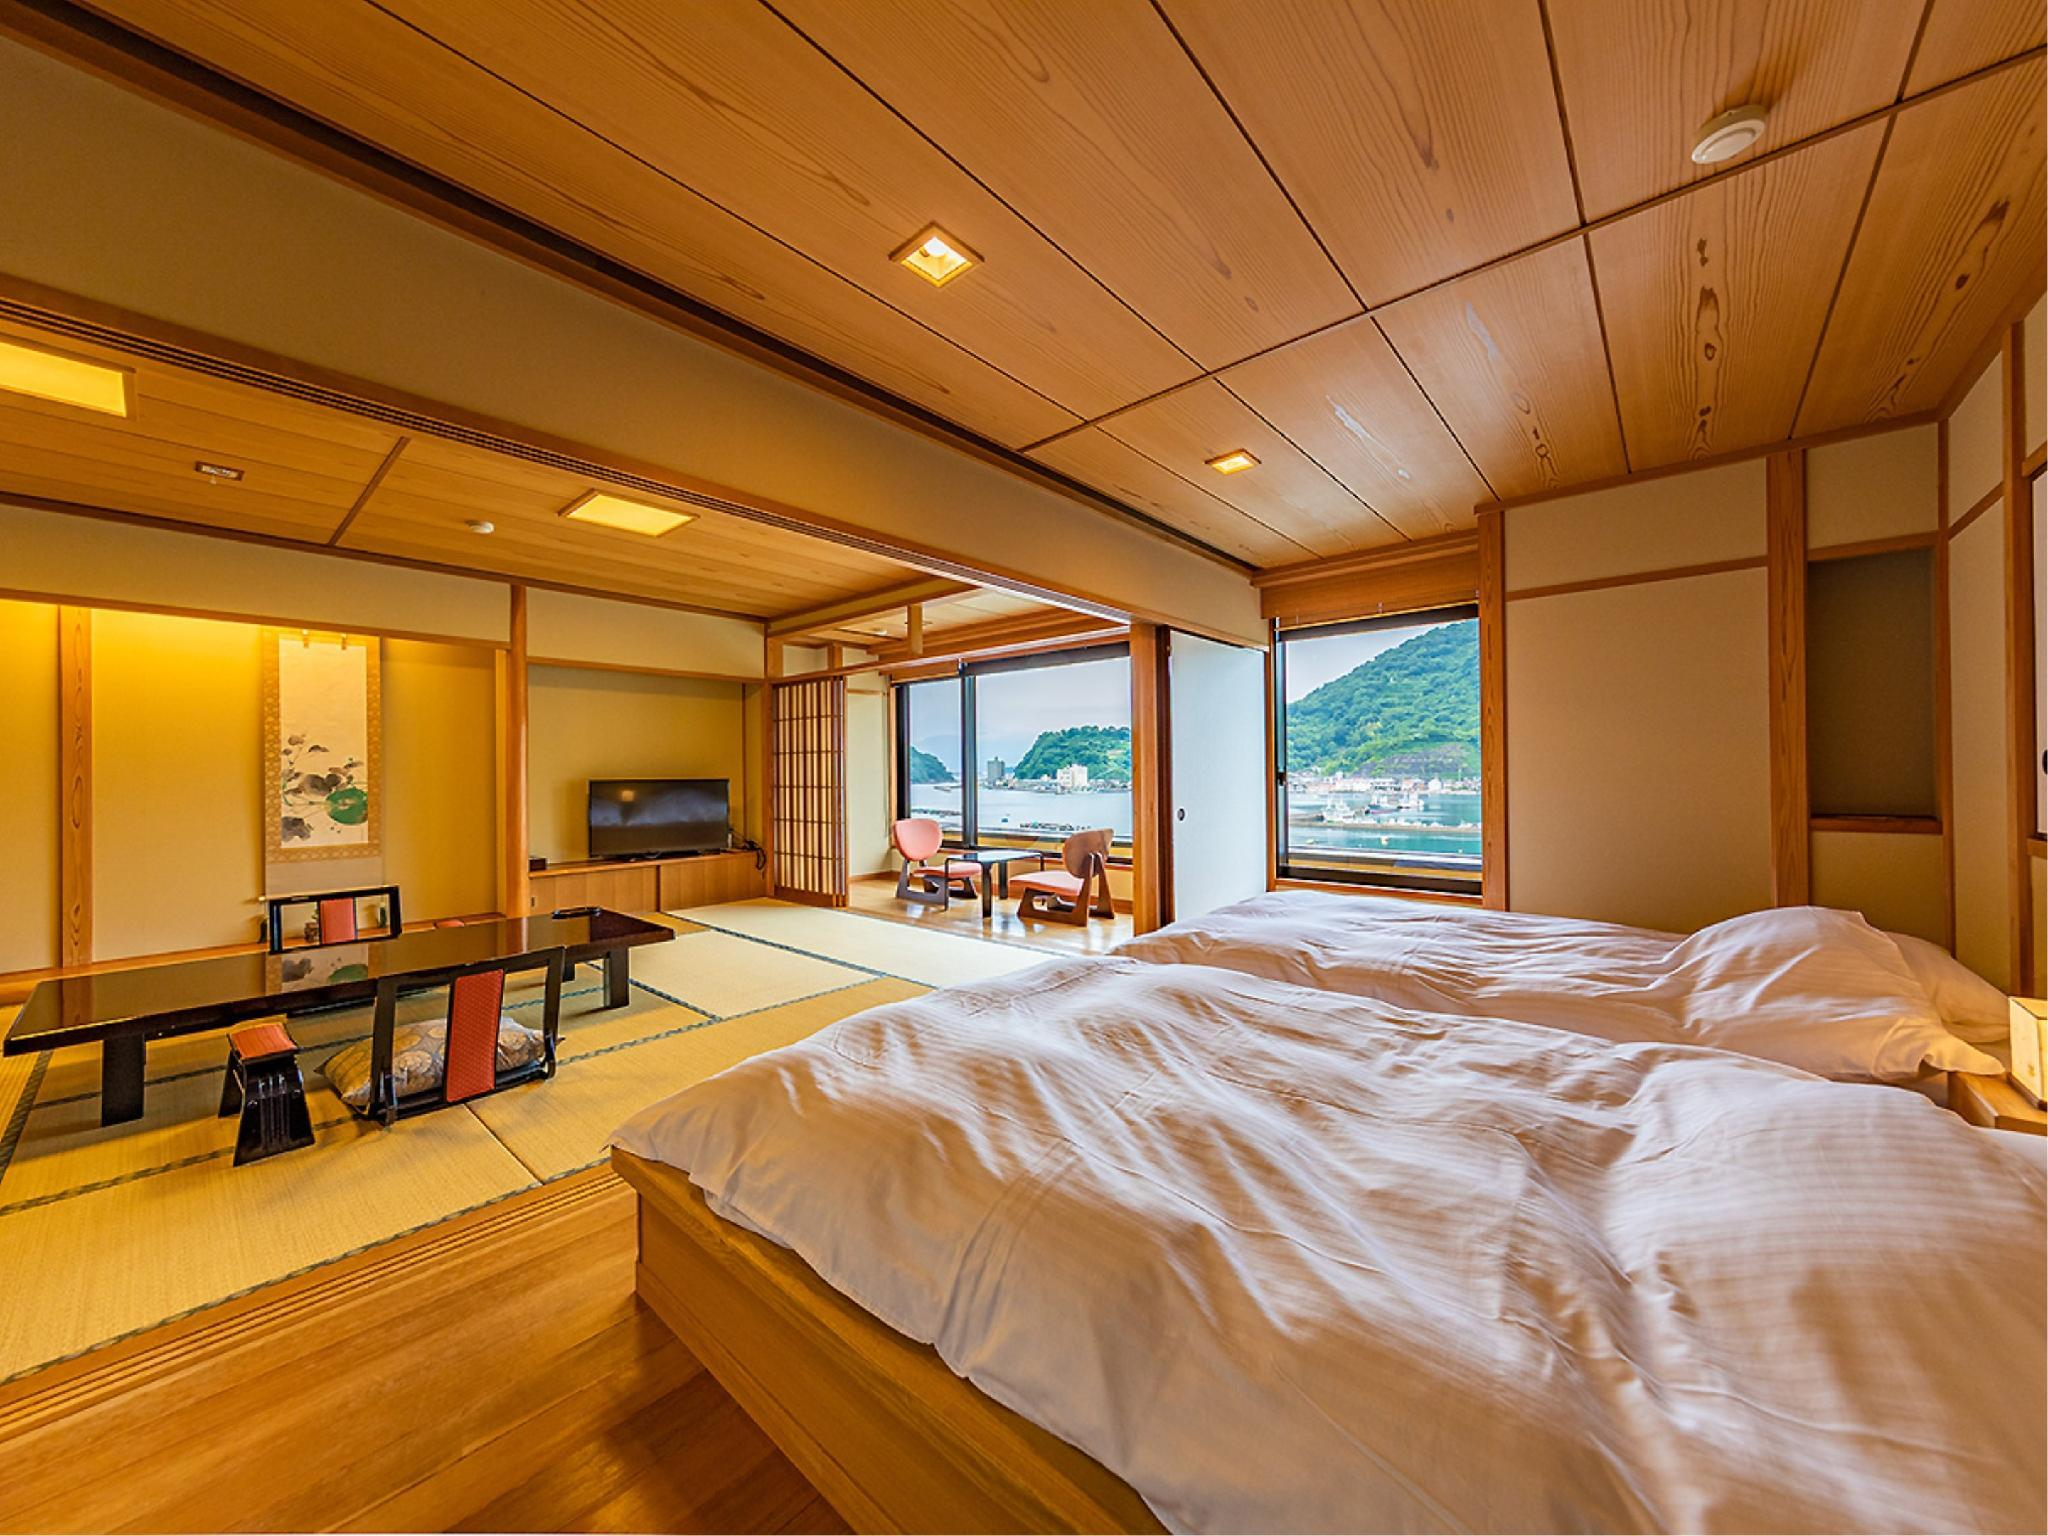 日式客房 - 有半露天浴池 (Japanese Style Room with Semi Open-Air Bath)